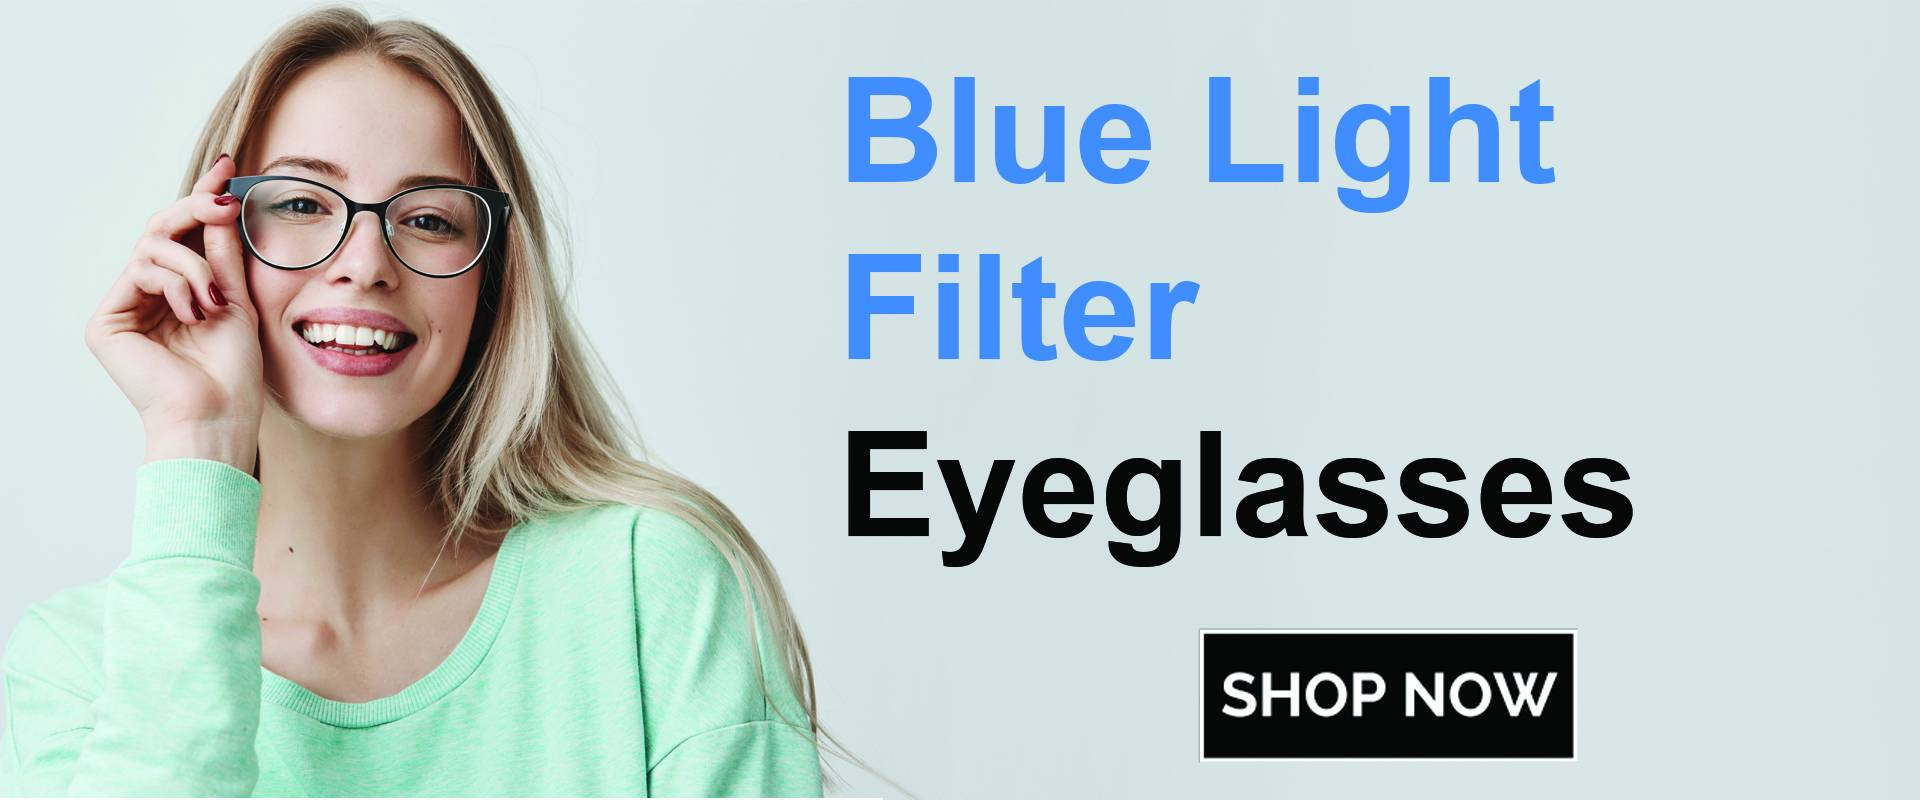 Blue Light Eyeglasses